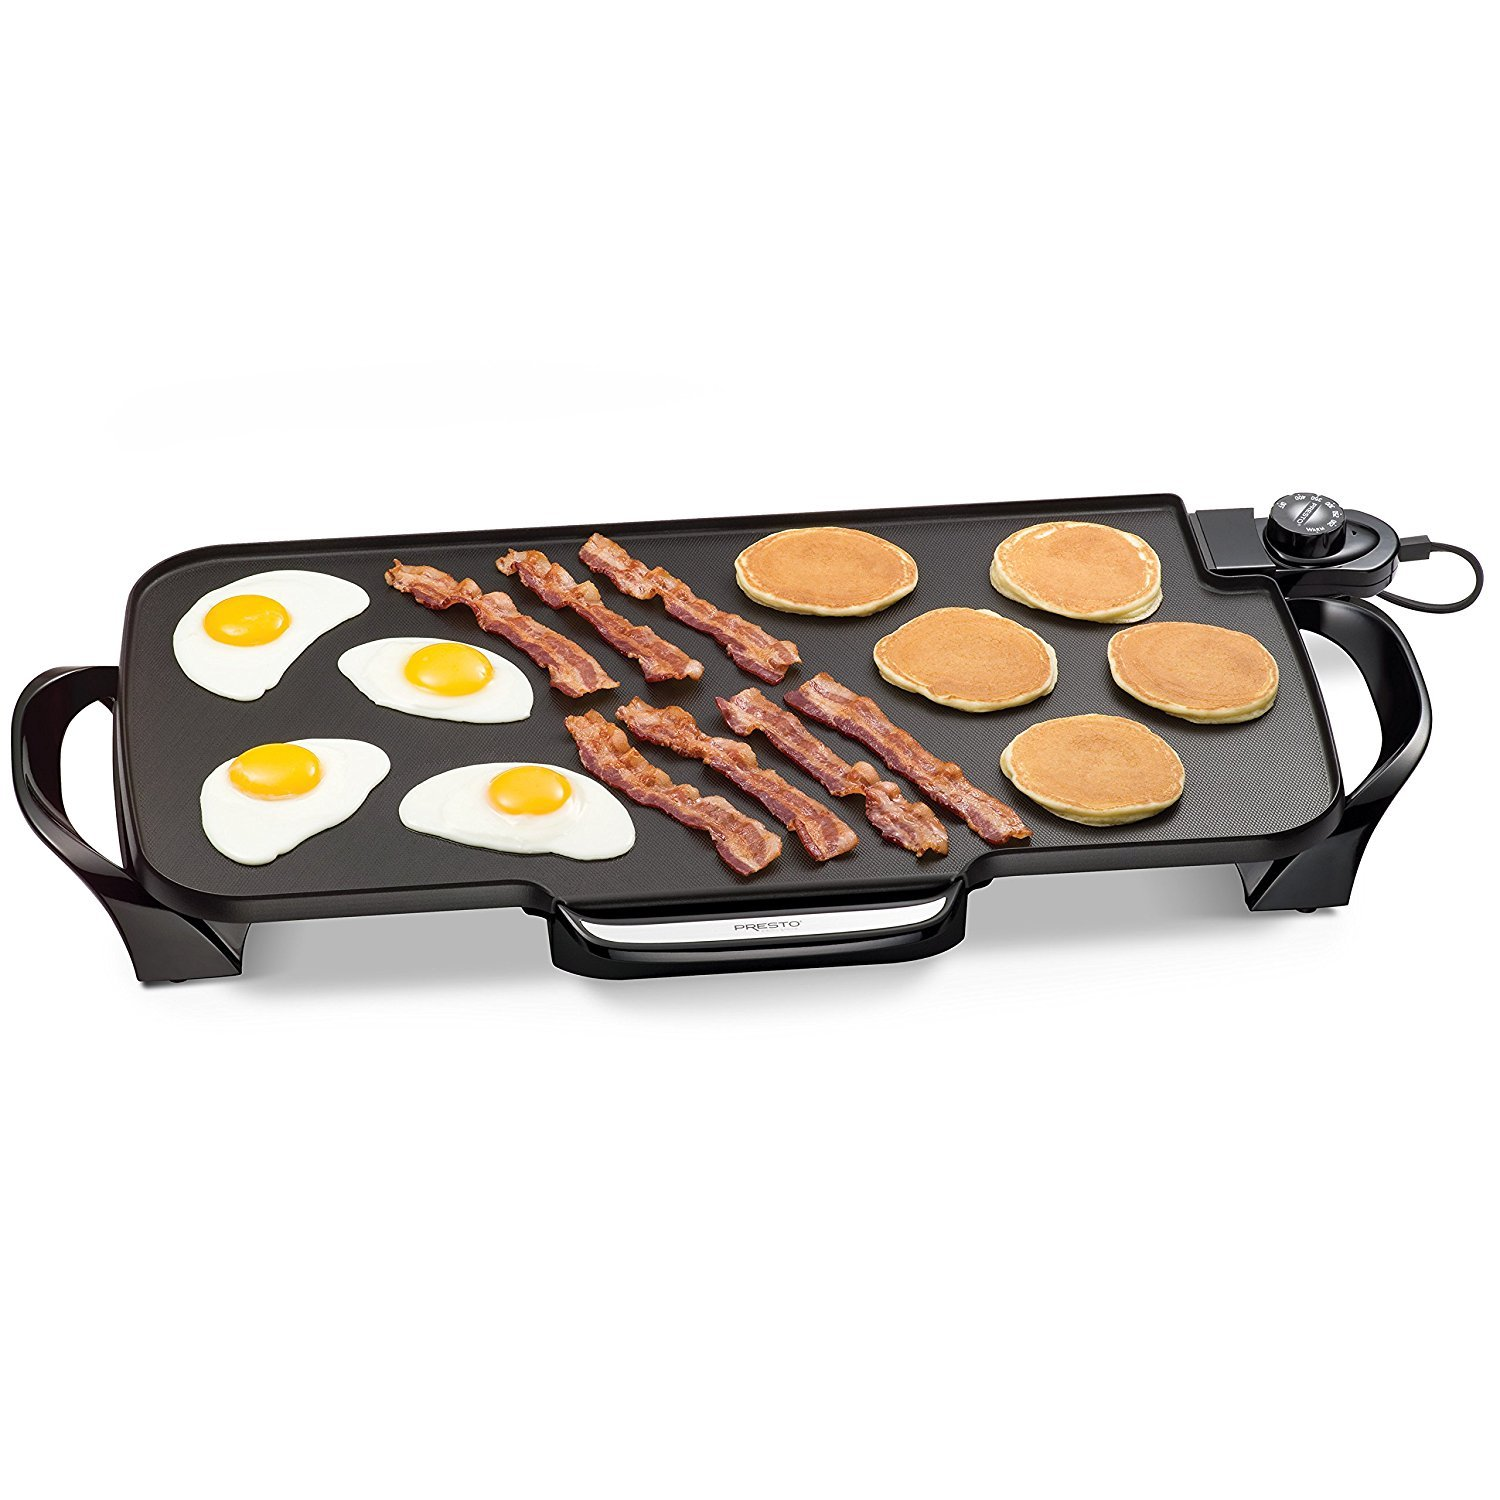 Presto 22-inch Electric Griddle Comes With Removable Handles